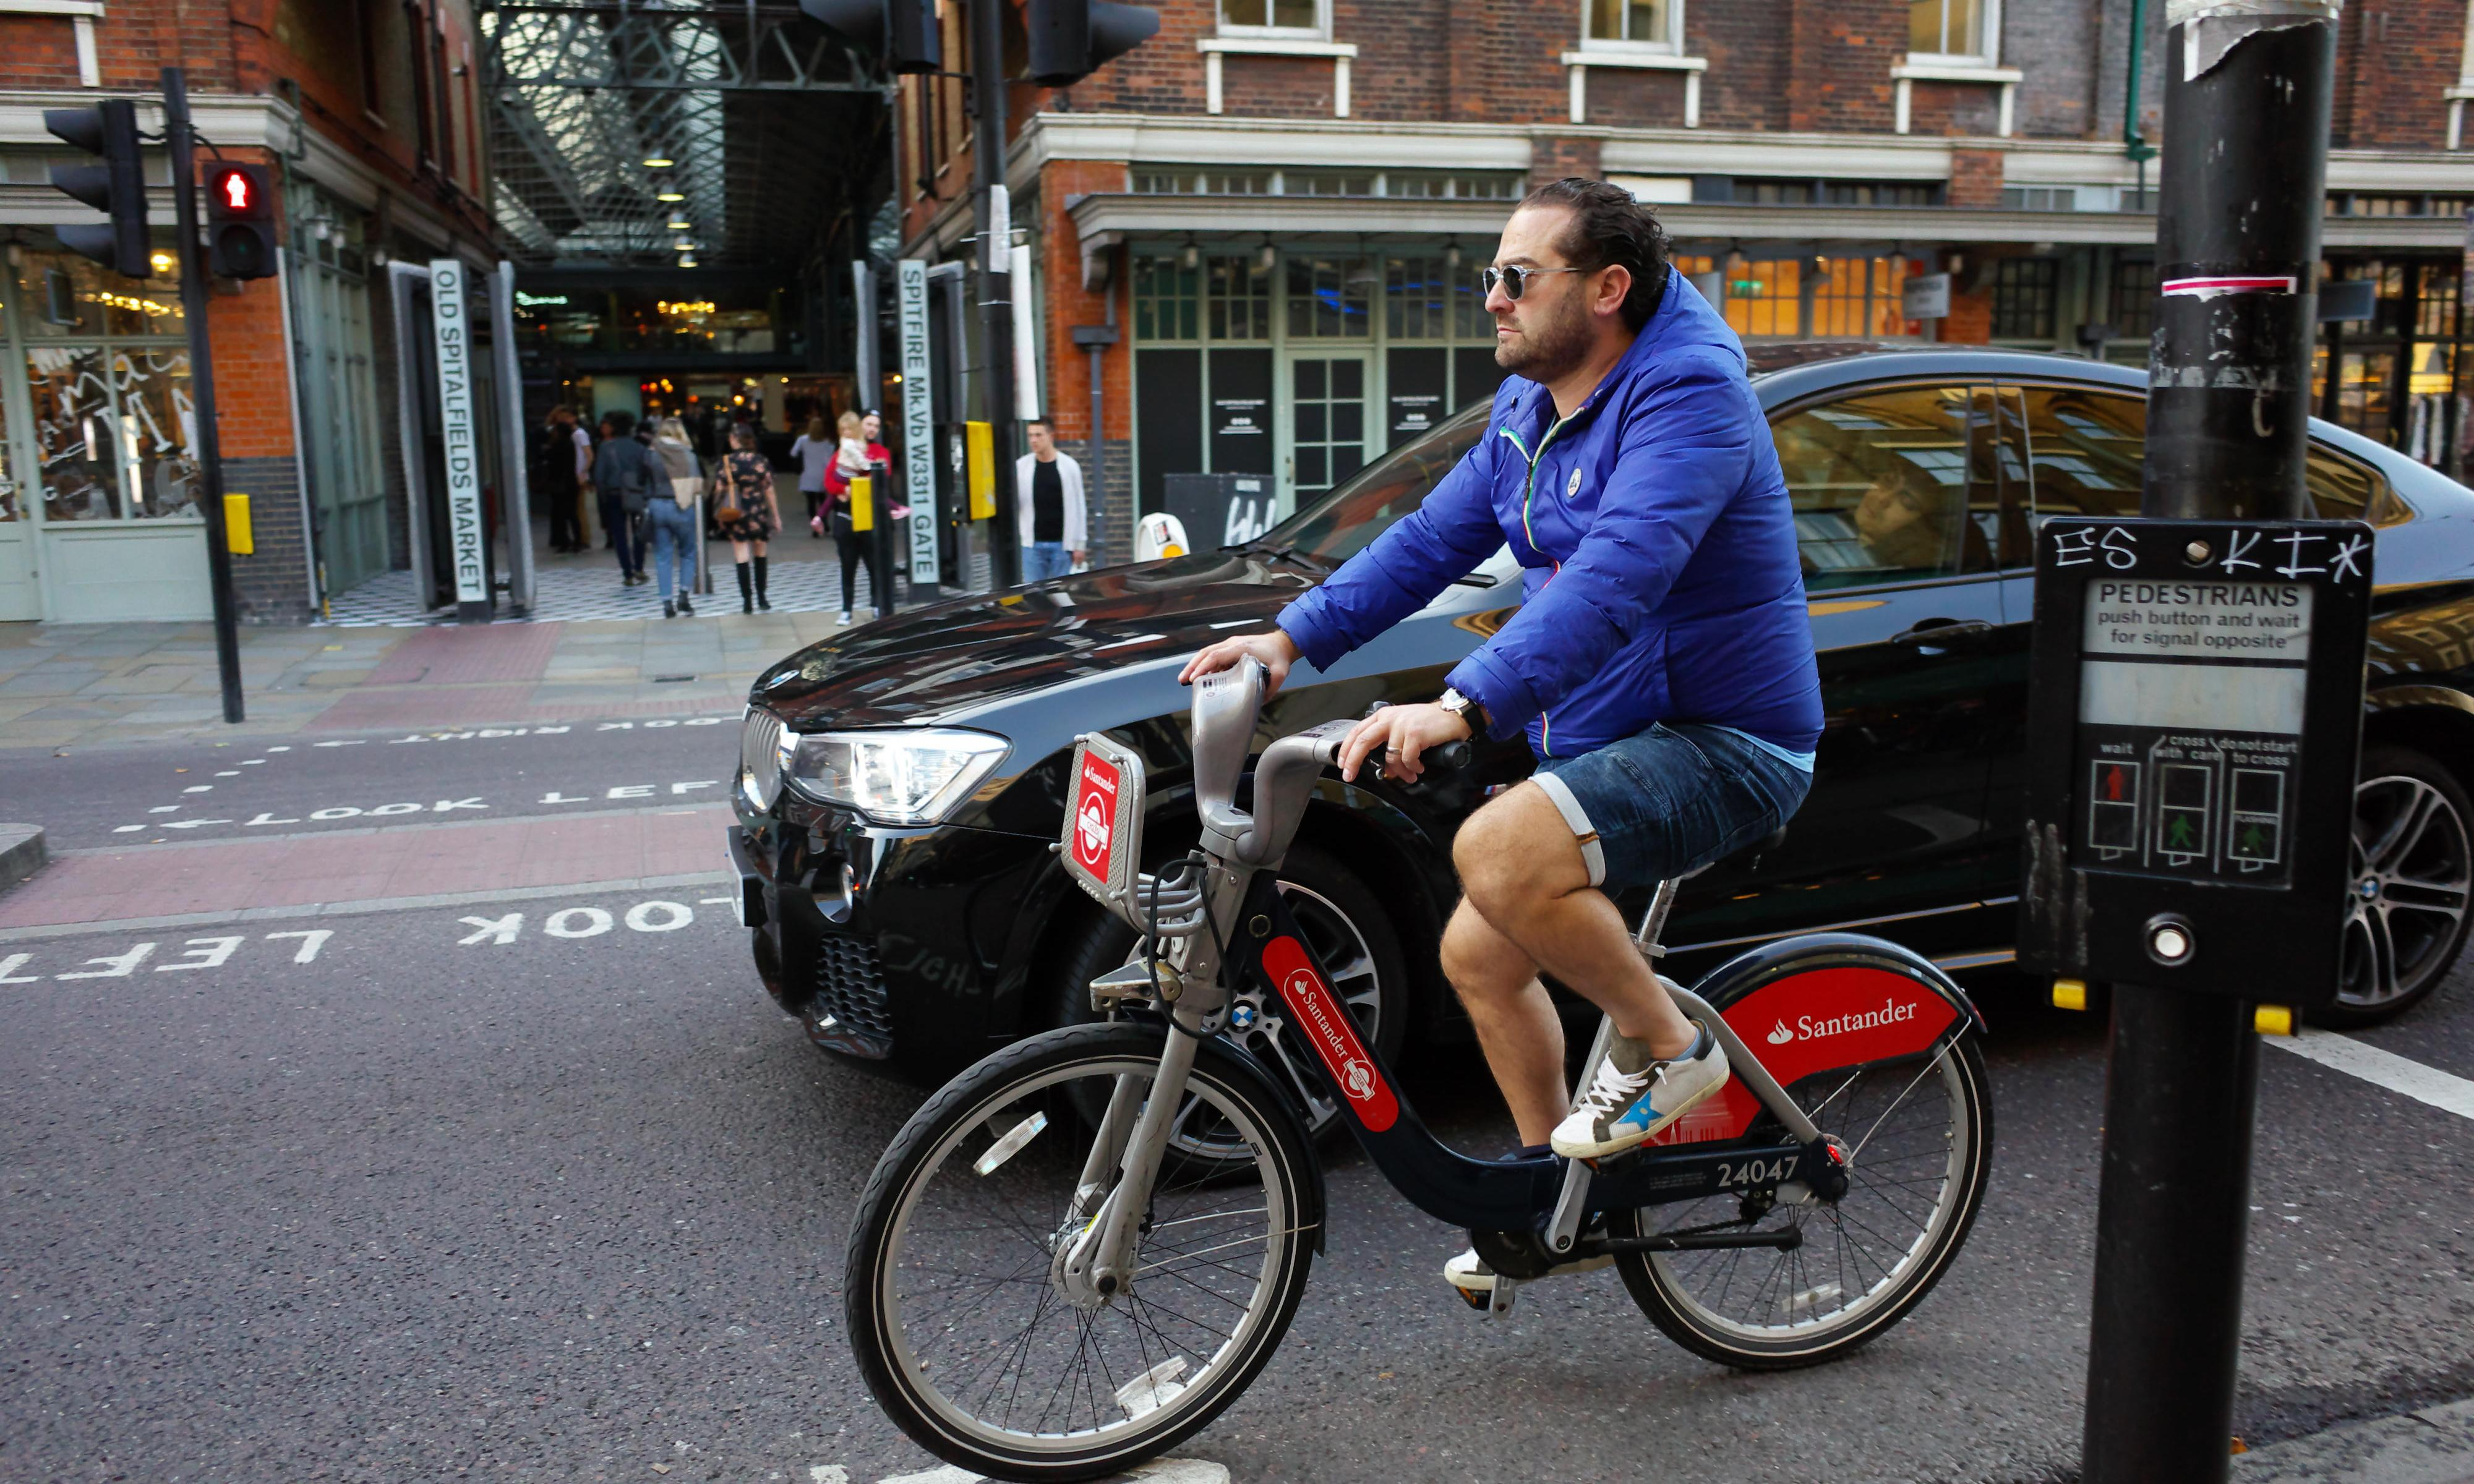 The Highway Code review is good news for cyclists but should just be the start